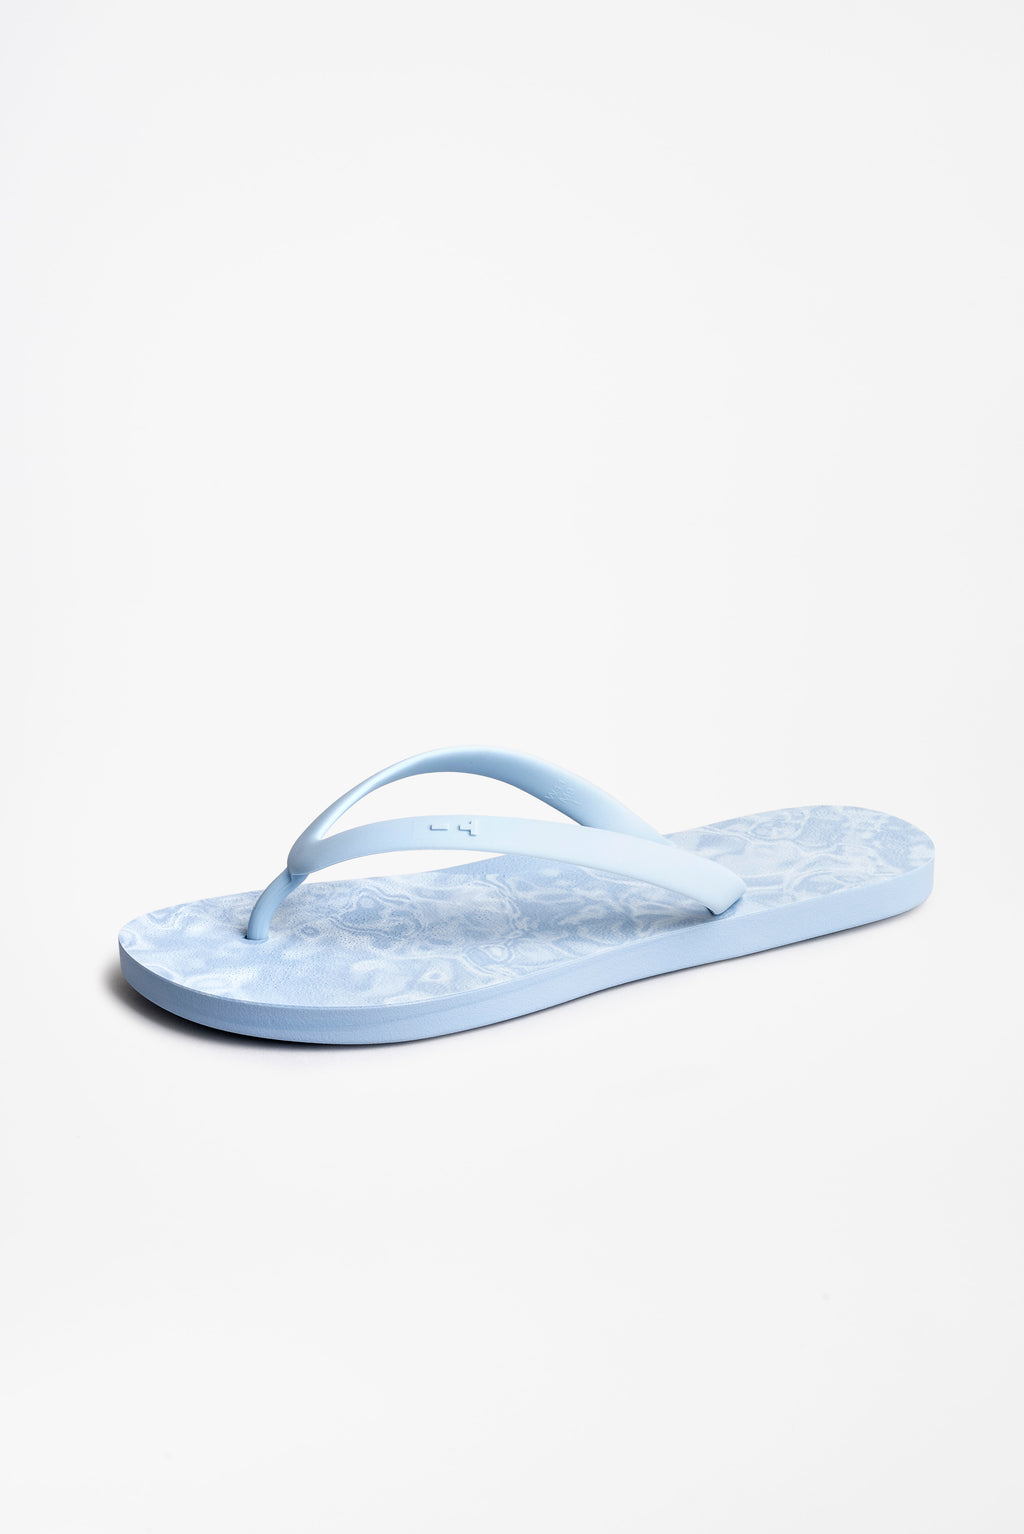 Sustainbly made American flip flops in blue with wave pattern